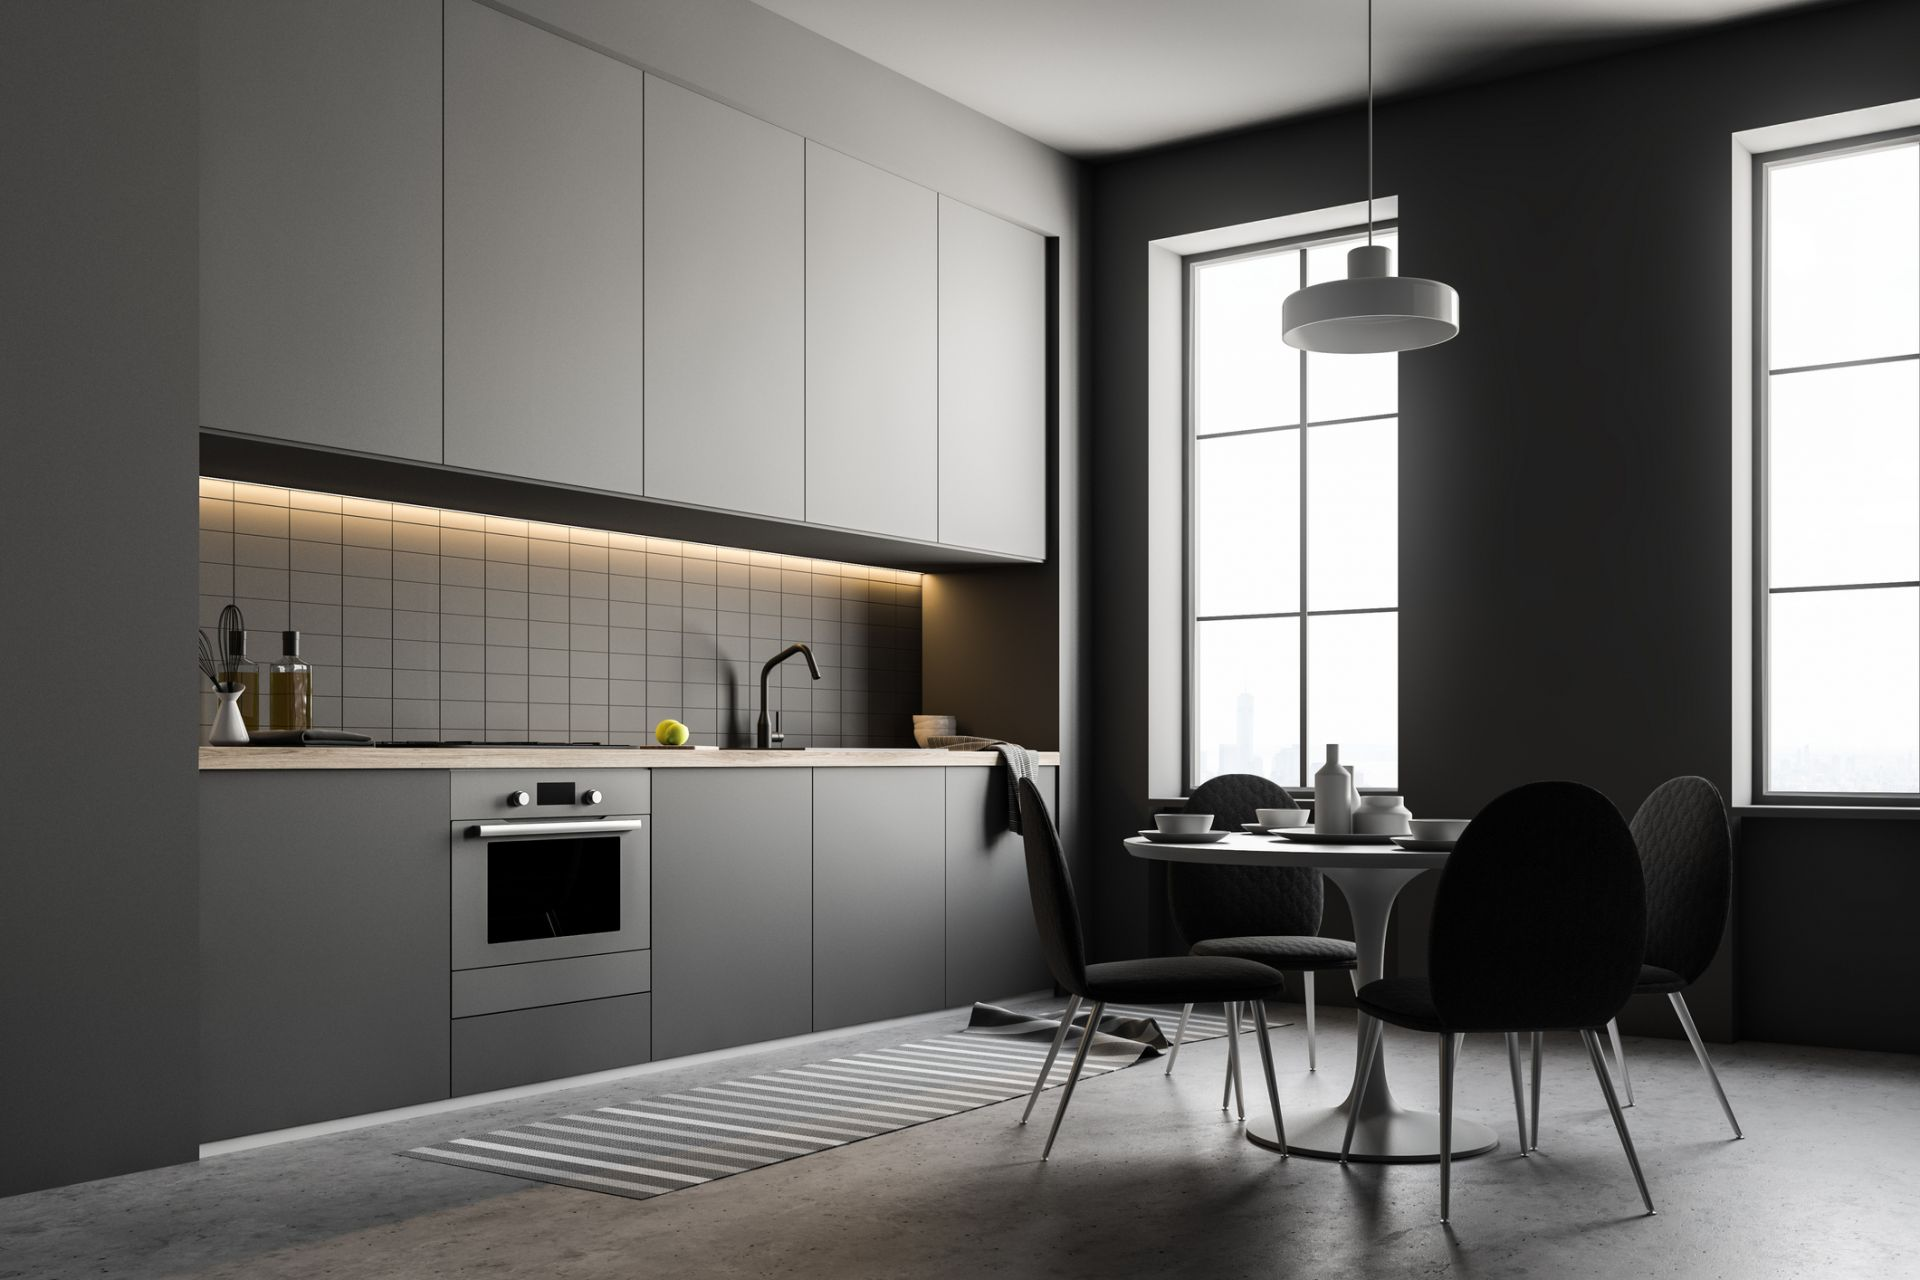 Acrylic Sheet For Décor Best Choice For Kitchen Panel